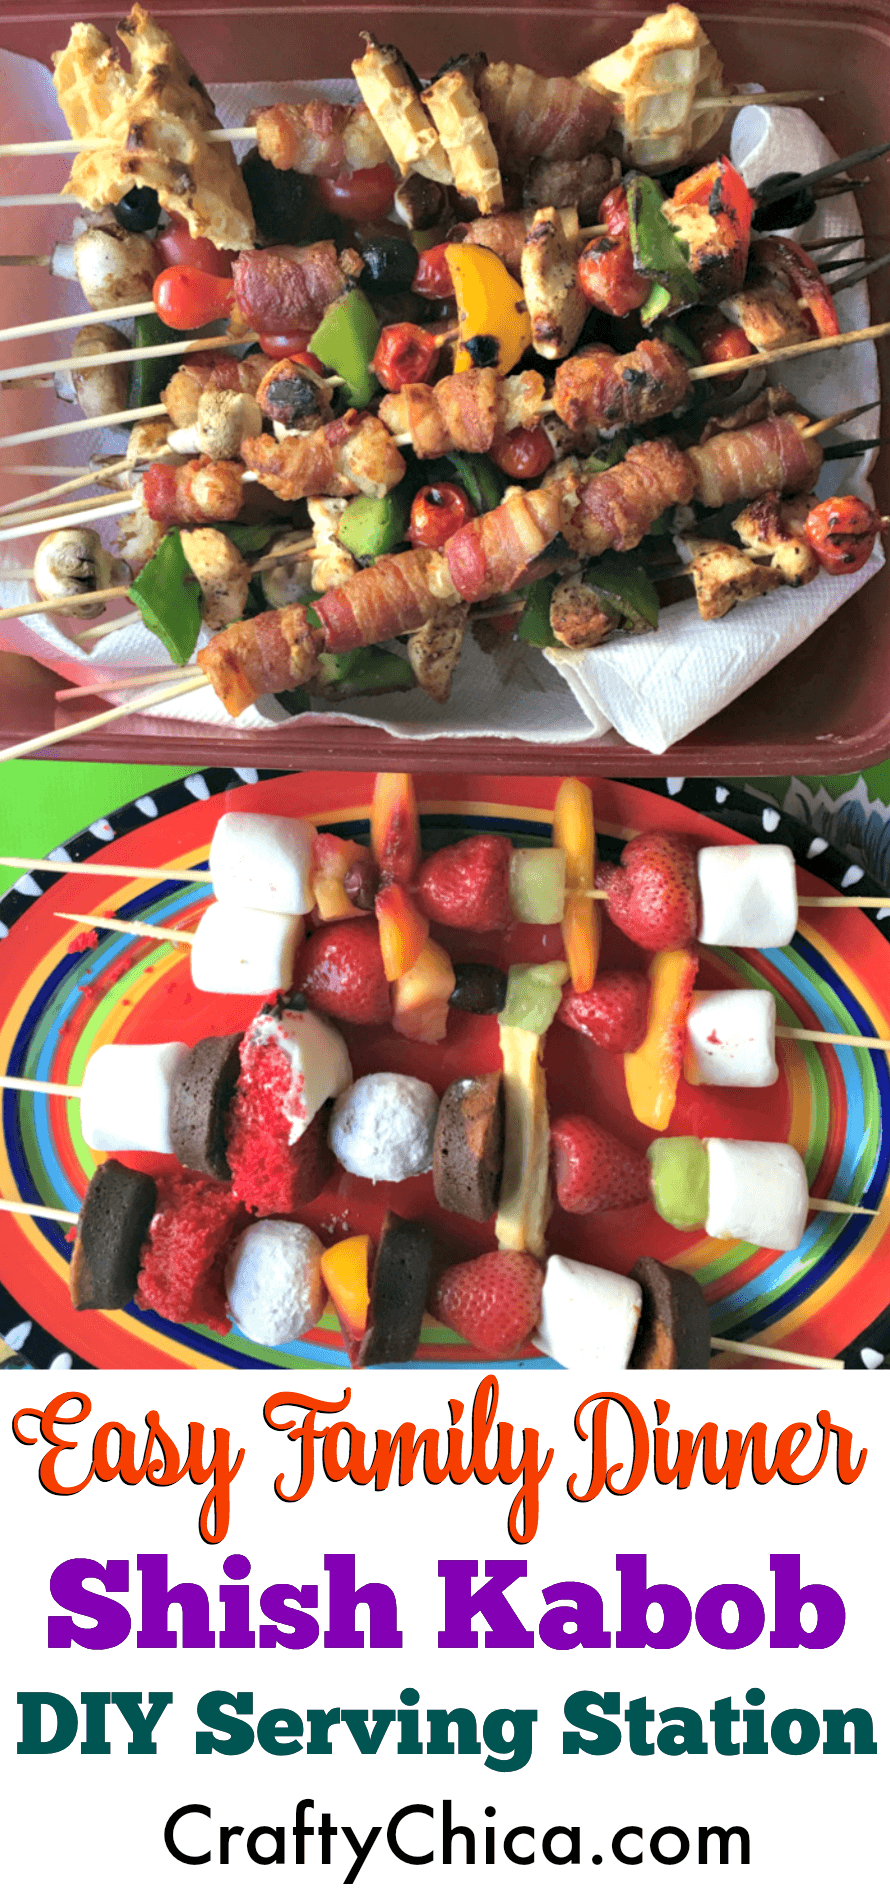 How to have a fun shish kabob night for dinner, by CraftyChica.com